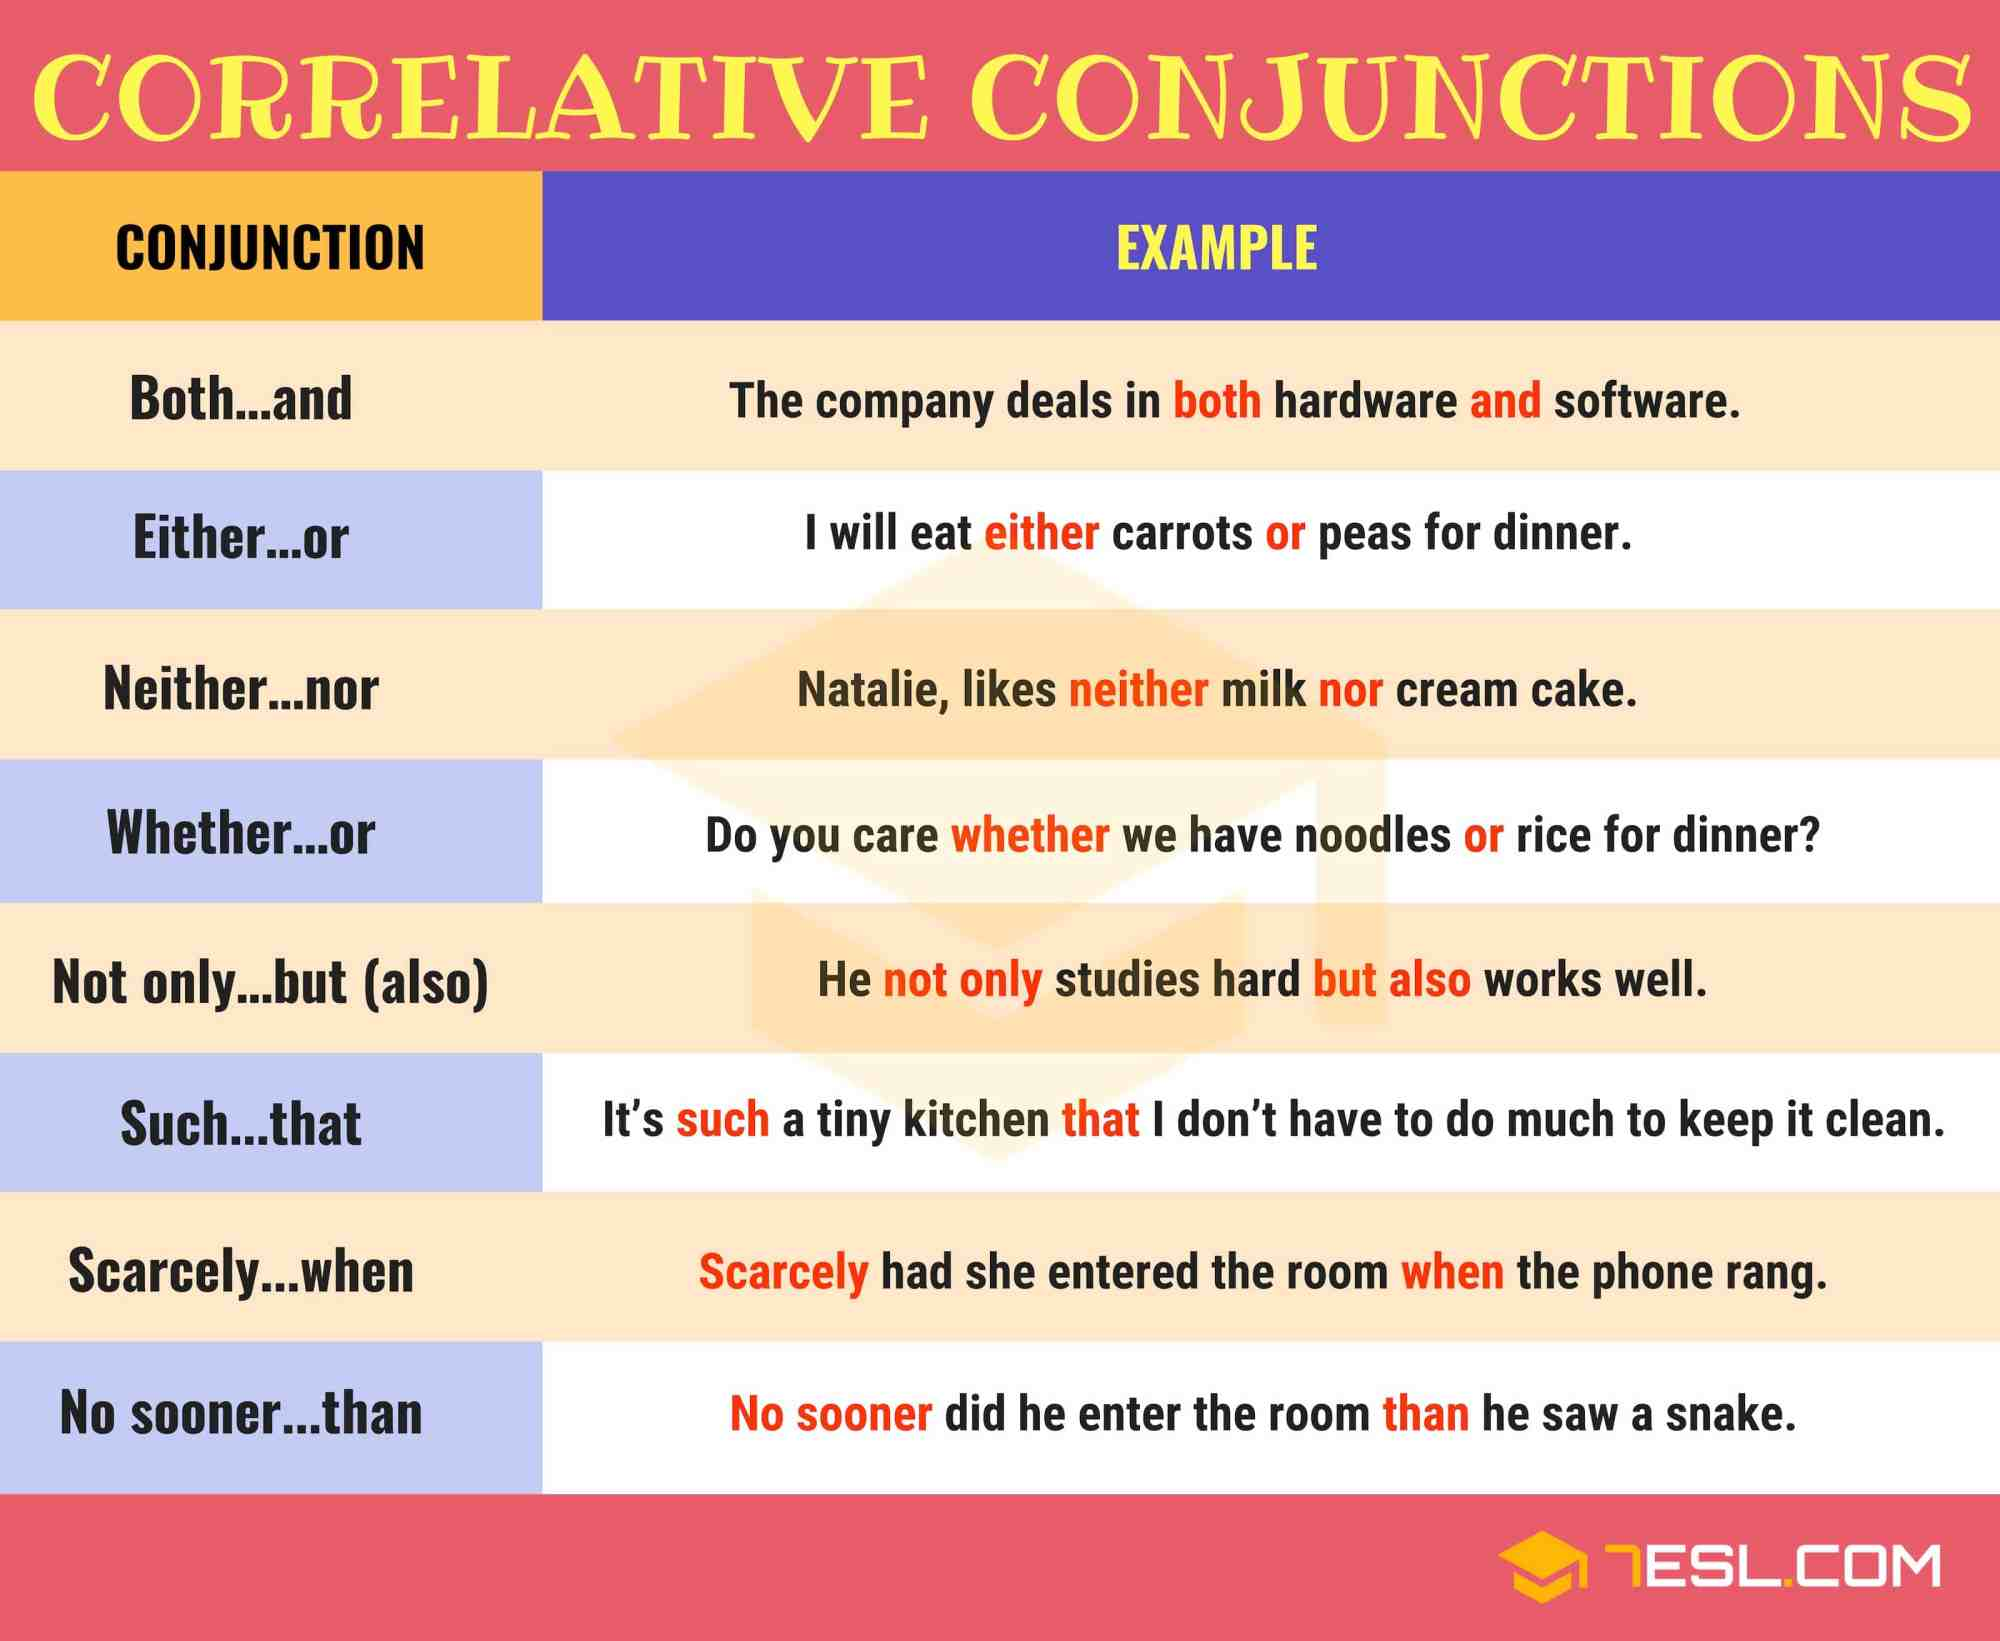 hight resolution of Correlative Conjunctions: Useful List and Examples • 7ESL